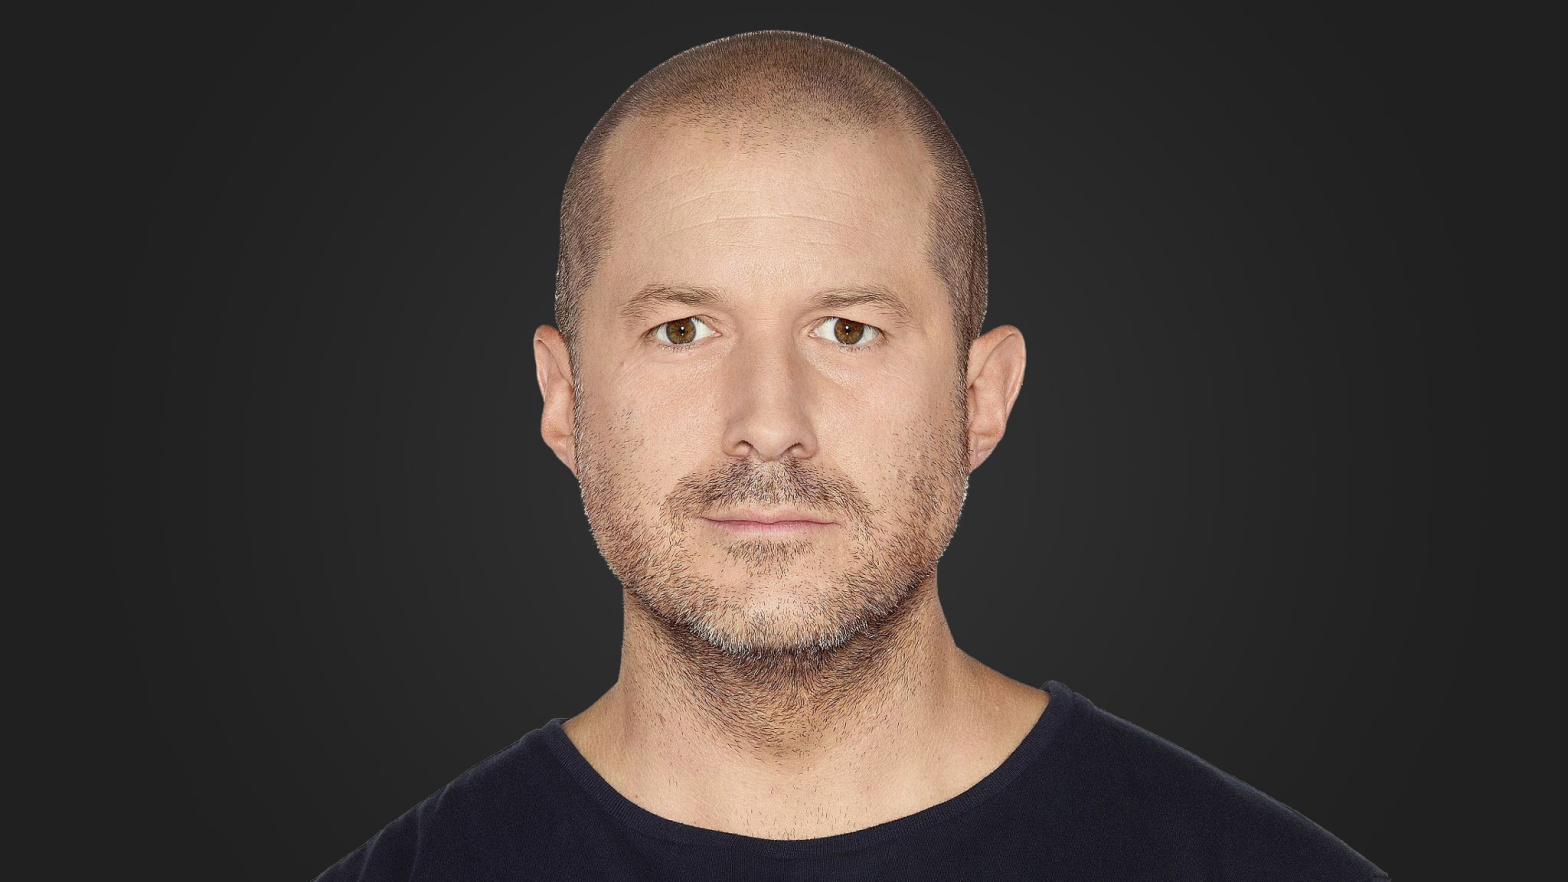 Jony Ive On Design Quote Matthew Hanzel